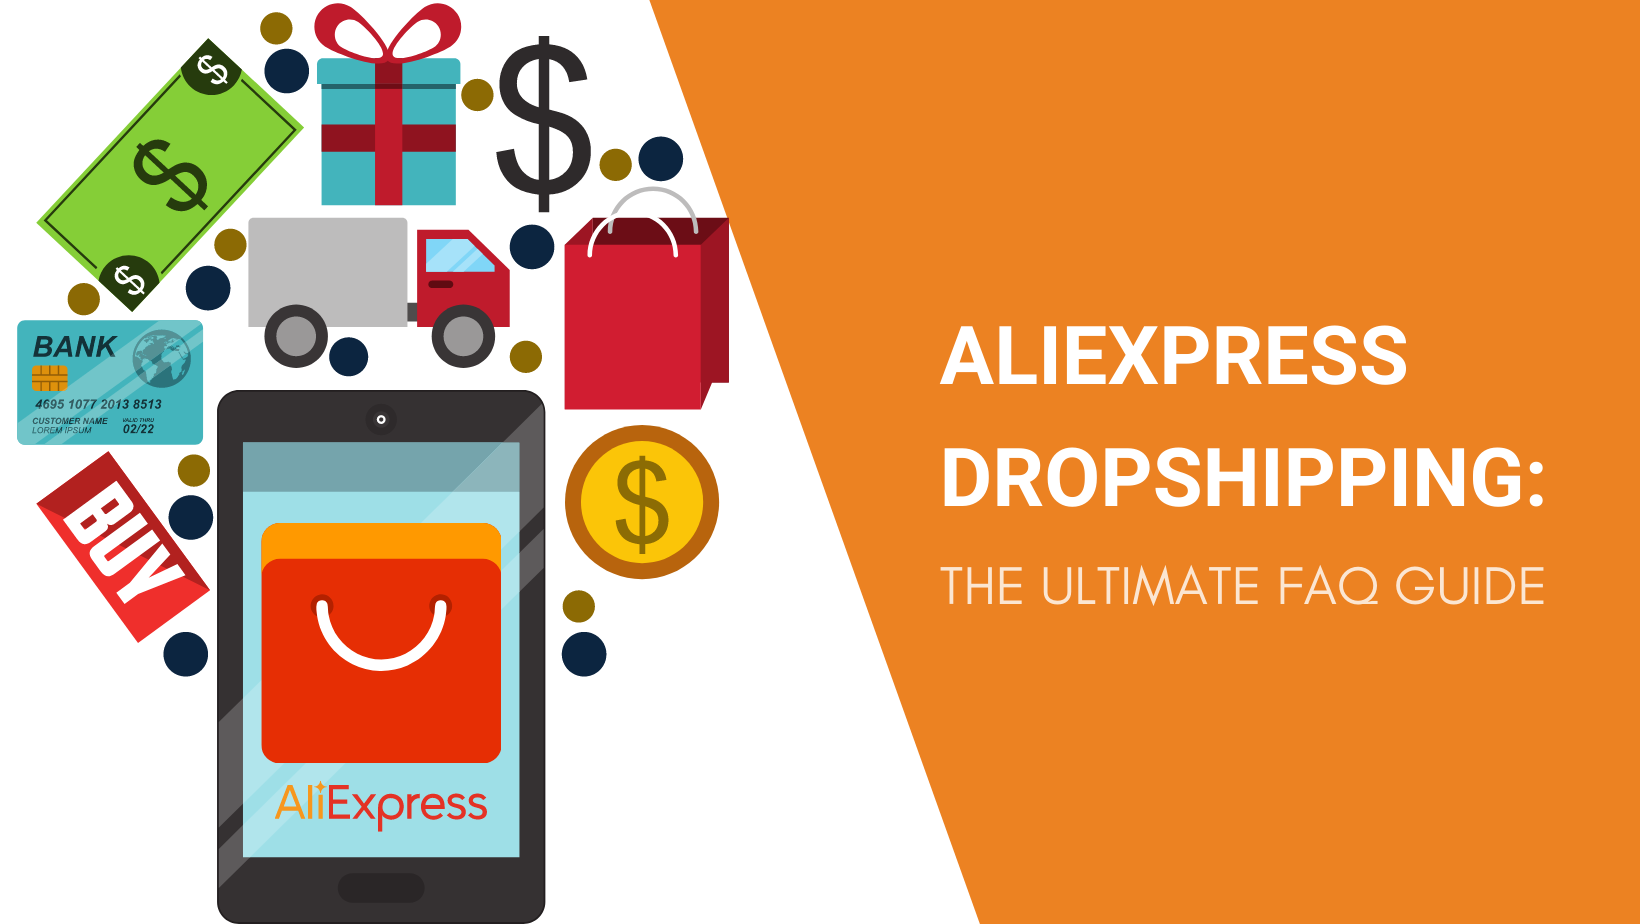 ALIEXPRESS DROPSHIPPING THE ULTIMATE FAQ GUIDE